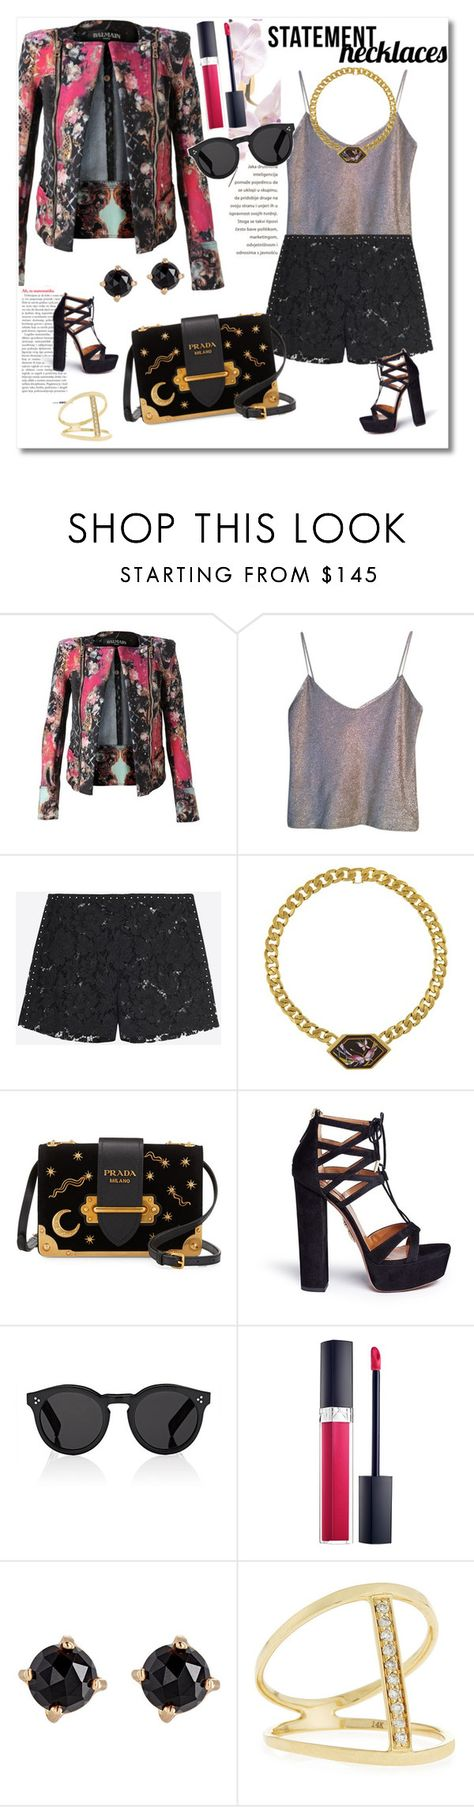 """""""Get the look"""" by vkmd ❤ liked on Polyvore featuring Balmain, Narciso Rodriguez, Valentino, Prada, Aquazzura, Illesteva, Irene Neuwirth, Sydney Evan and statementnecklaces"""